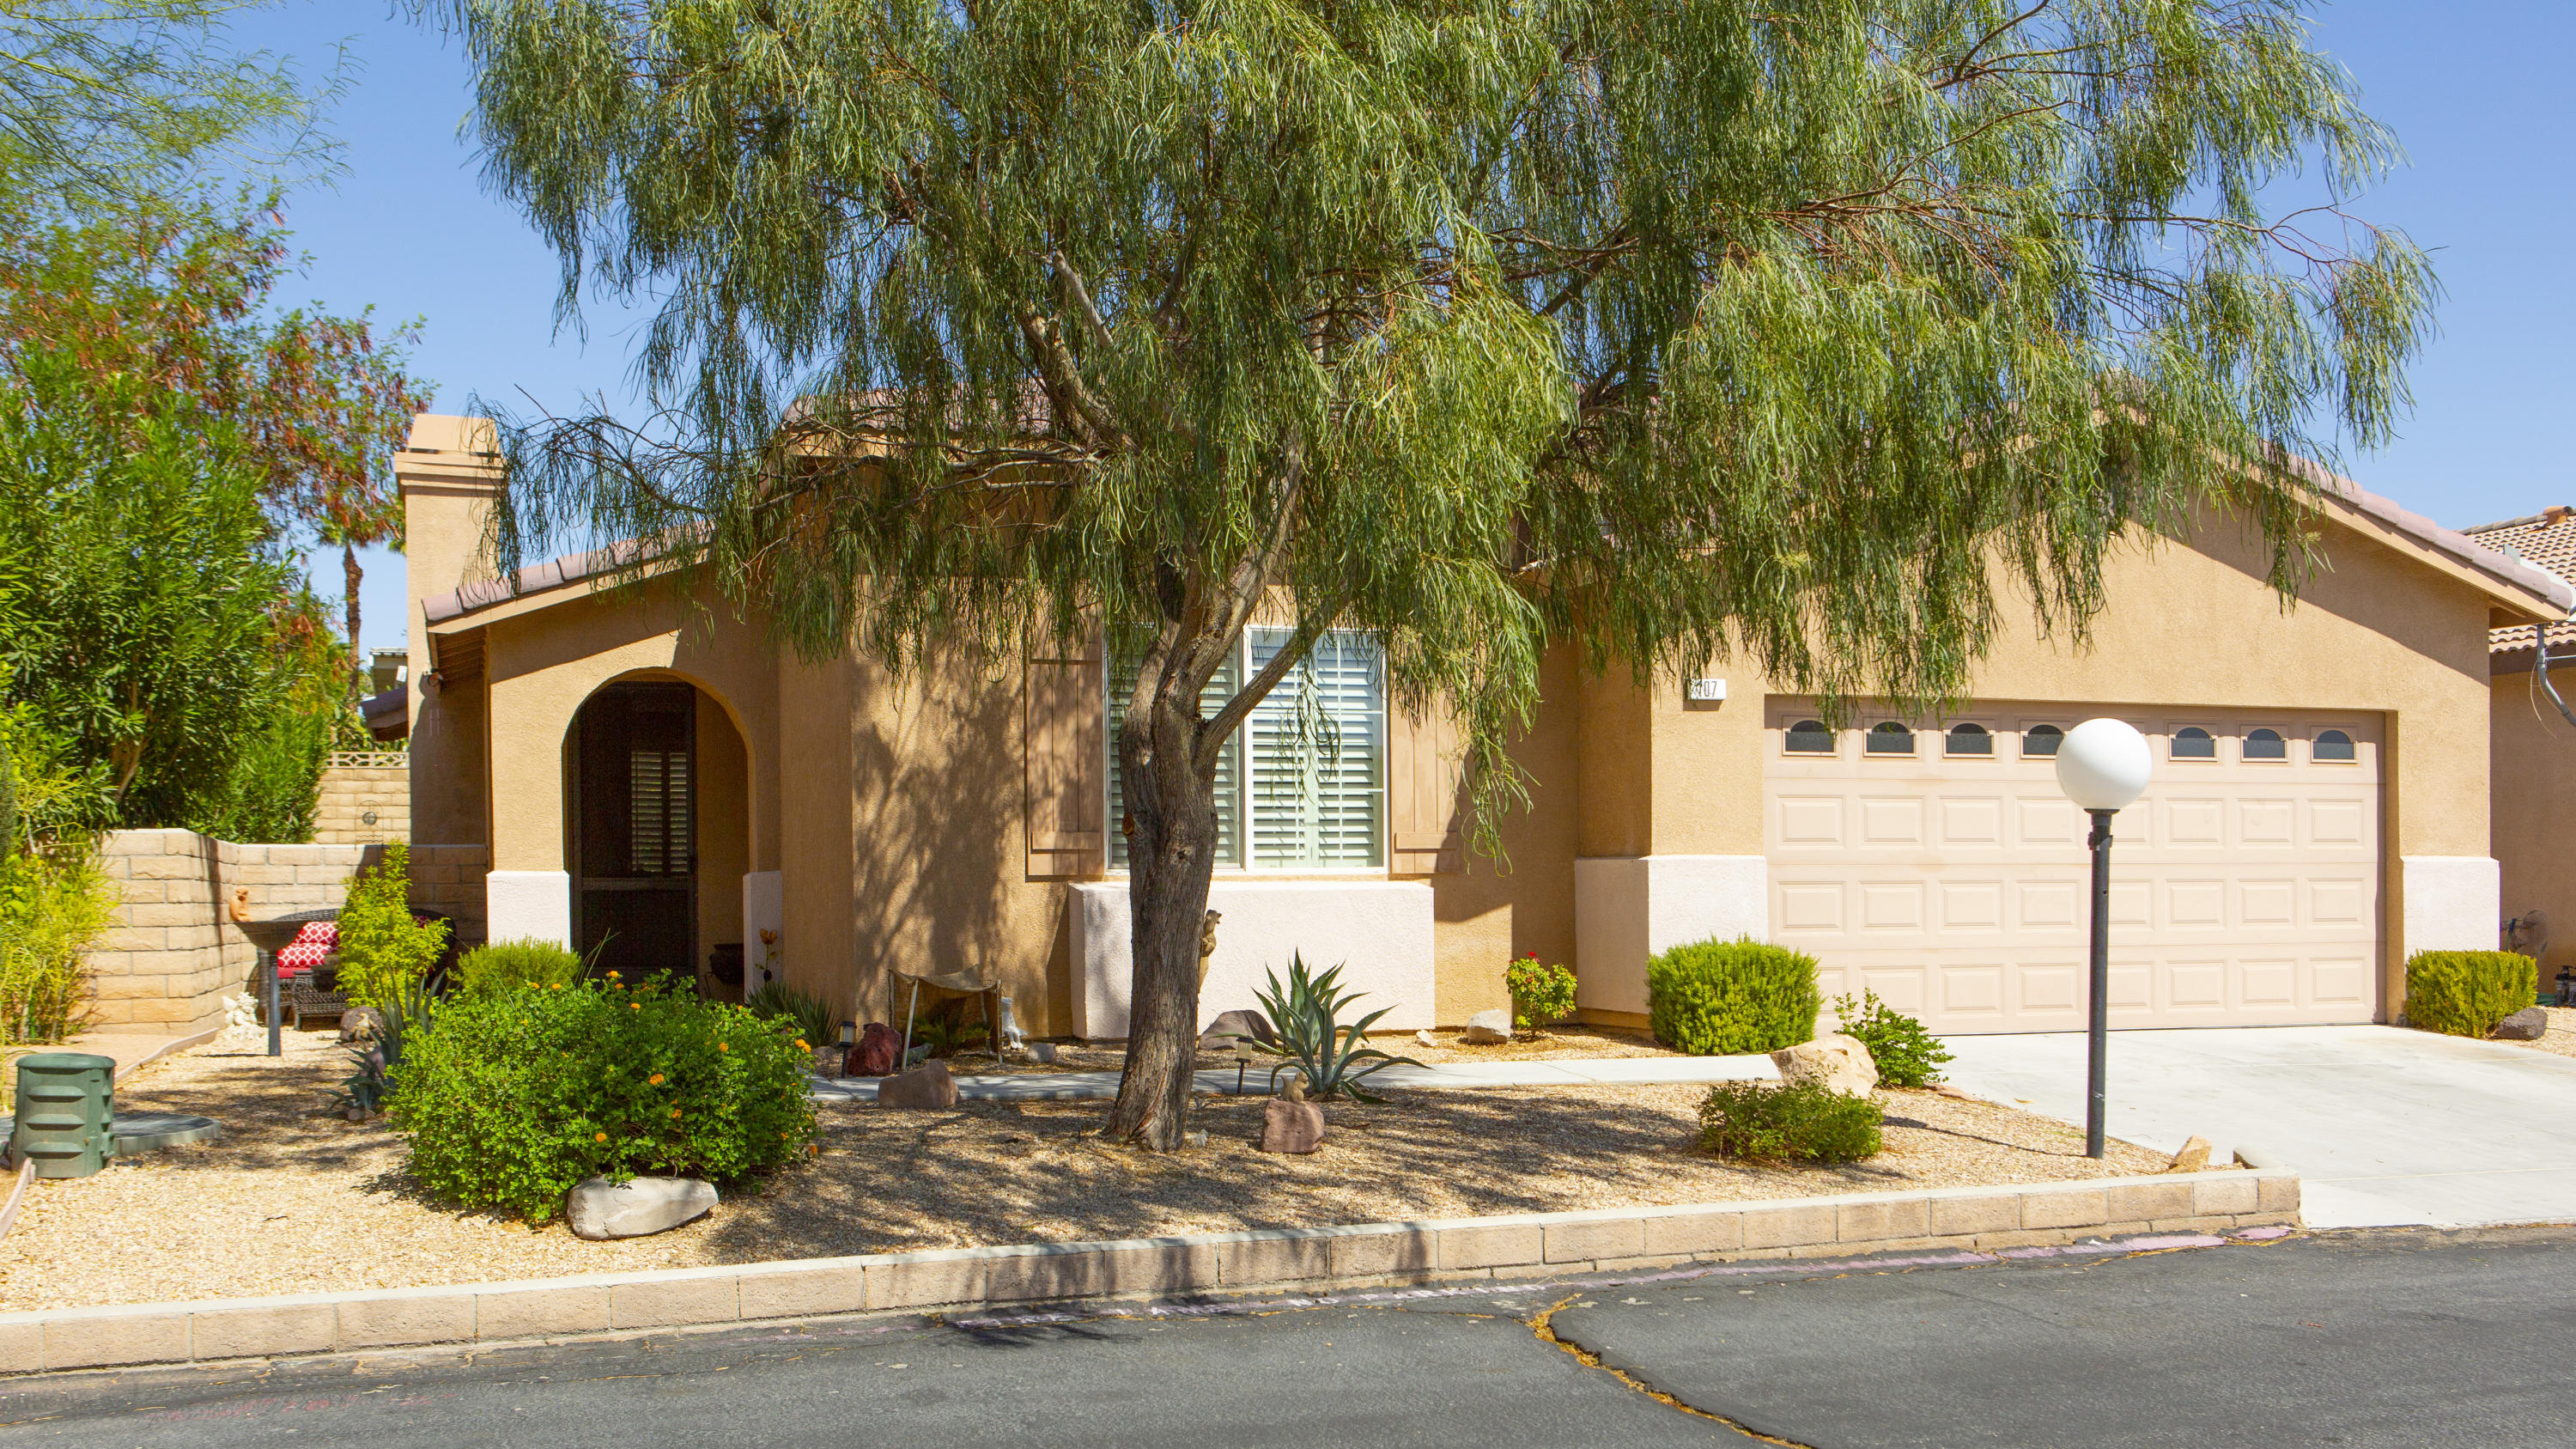 Photo of 65565 Acoma Avenue #107, Desert Hot Springs, CA 92240